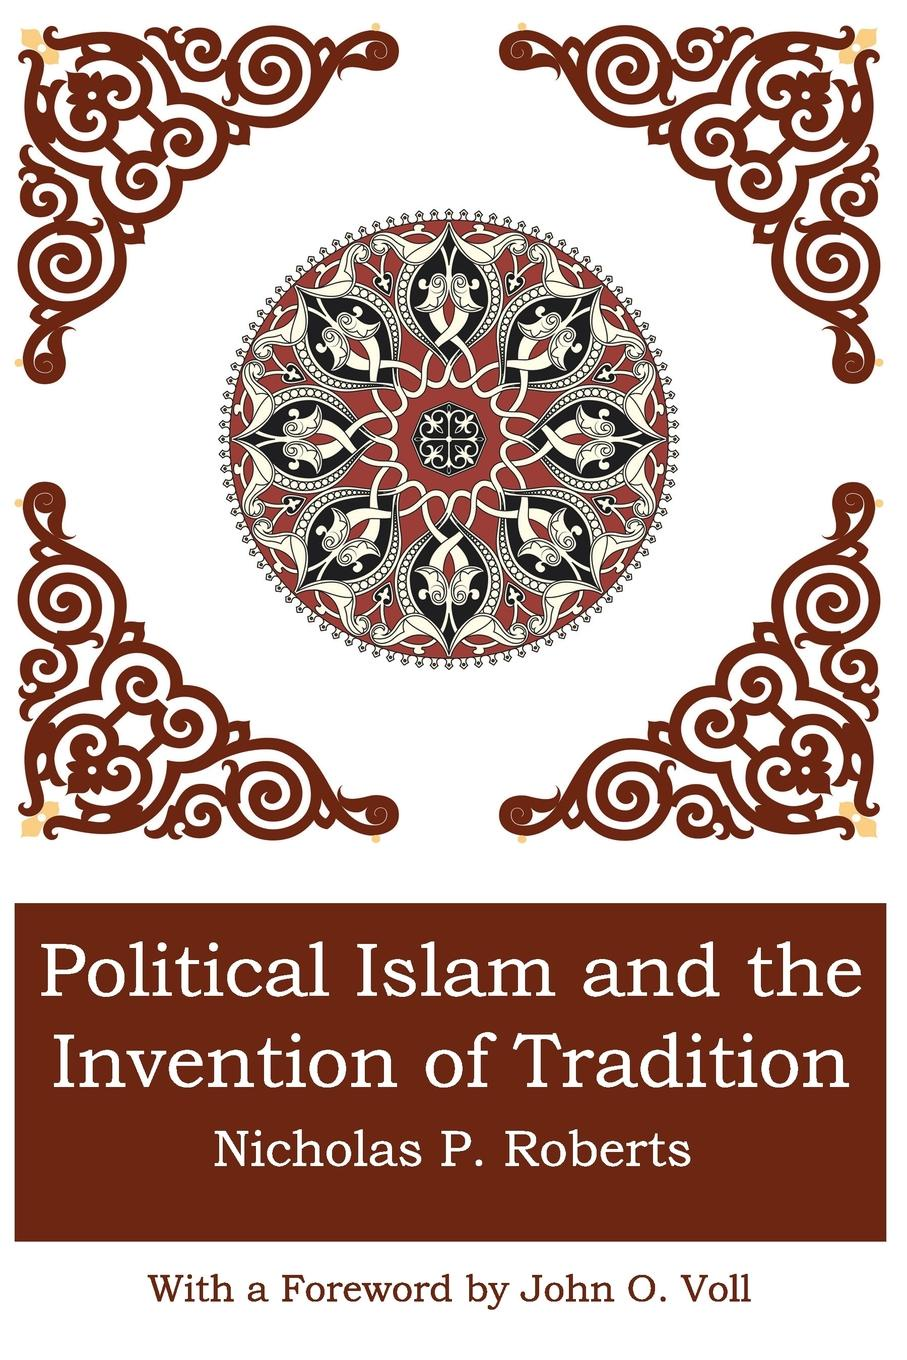 Nicholas P. Roberts POLITICAL ISLAM AND THE INVENTION OF TRADITION nicholas p roberts political islam and the invention of tradition